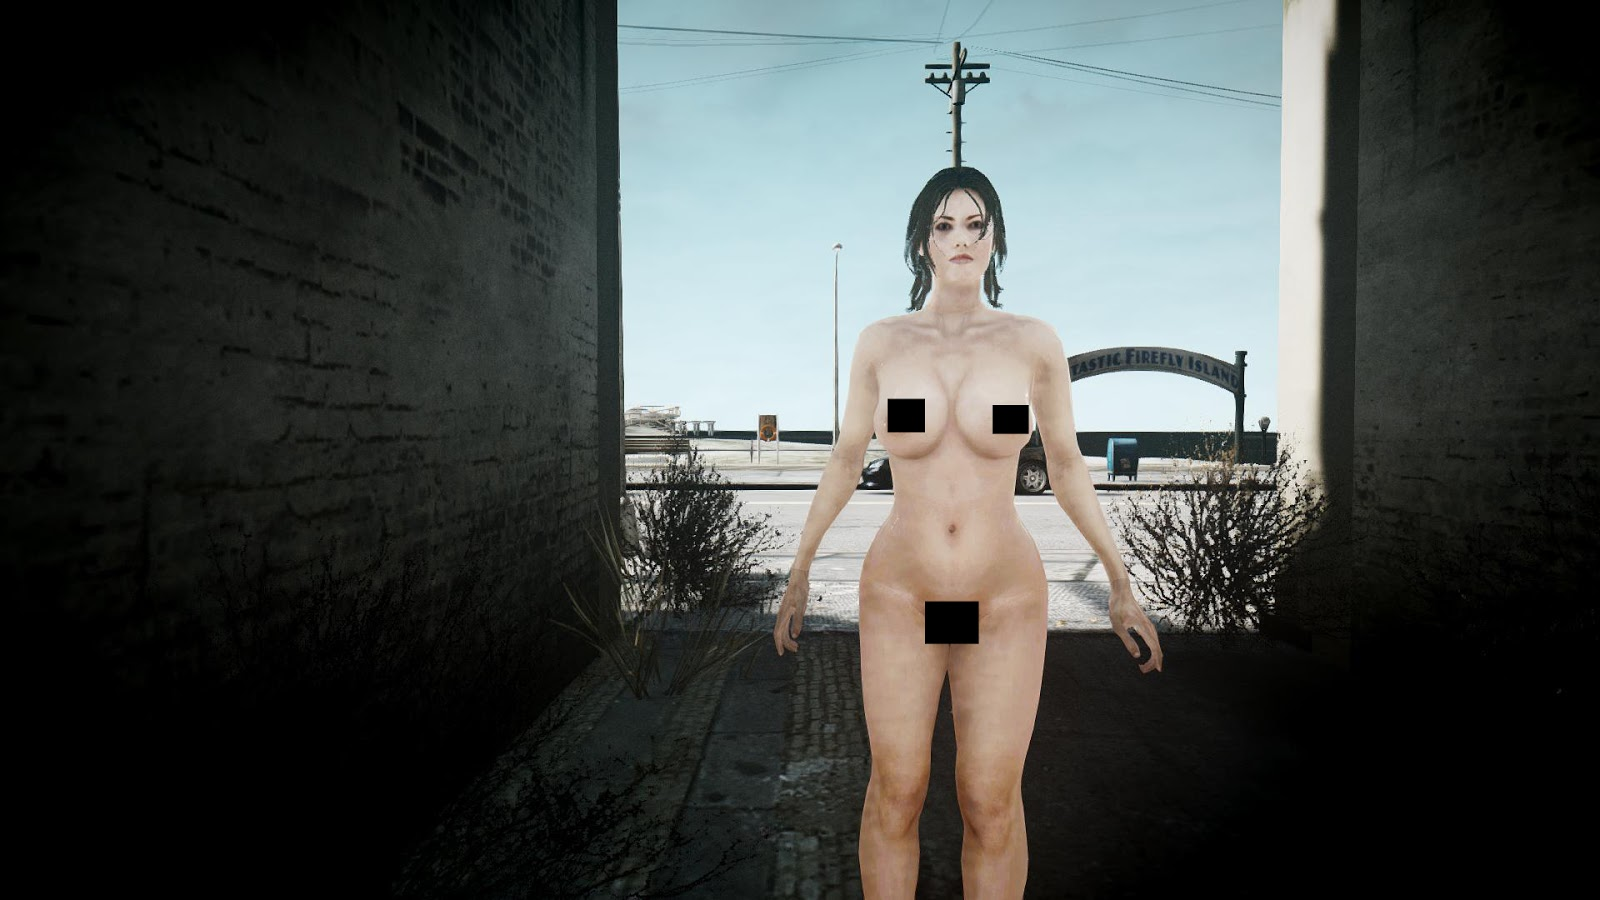 nude girl at gta